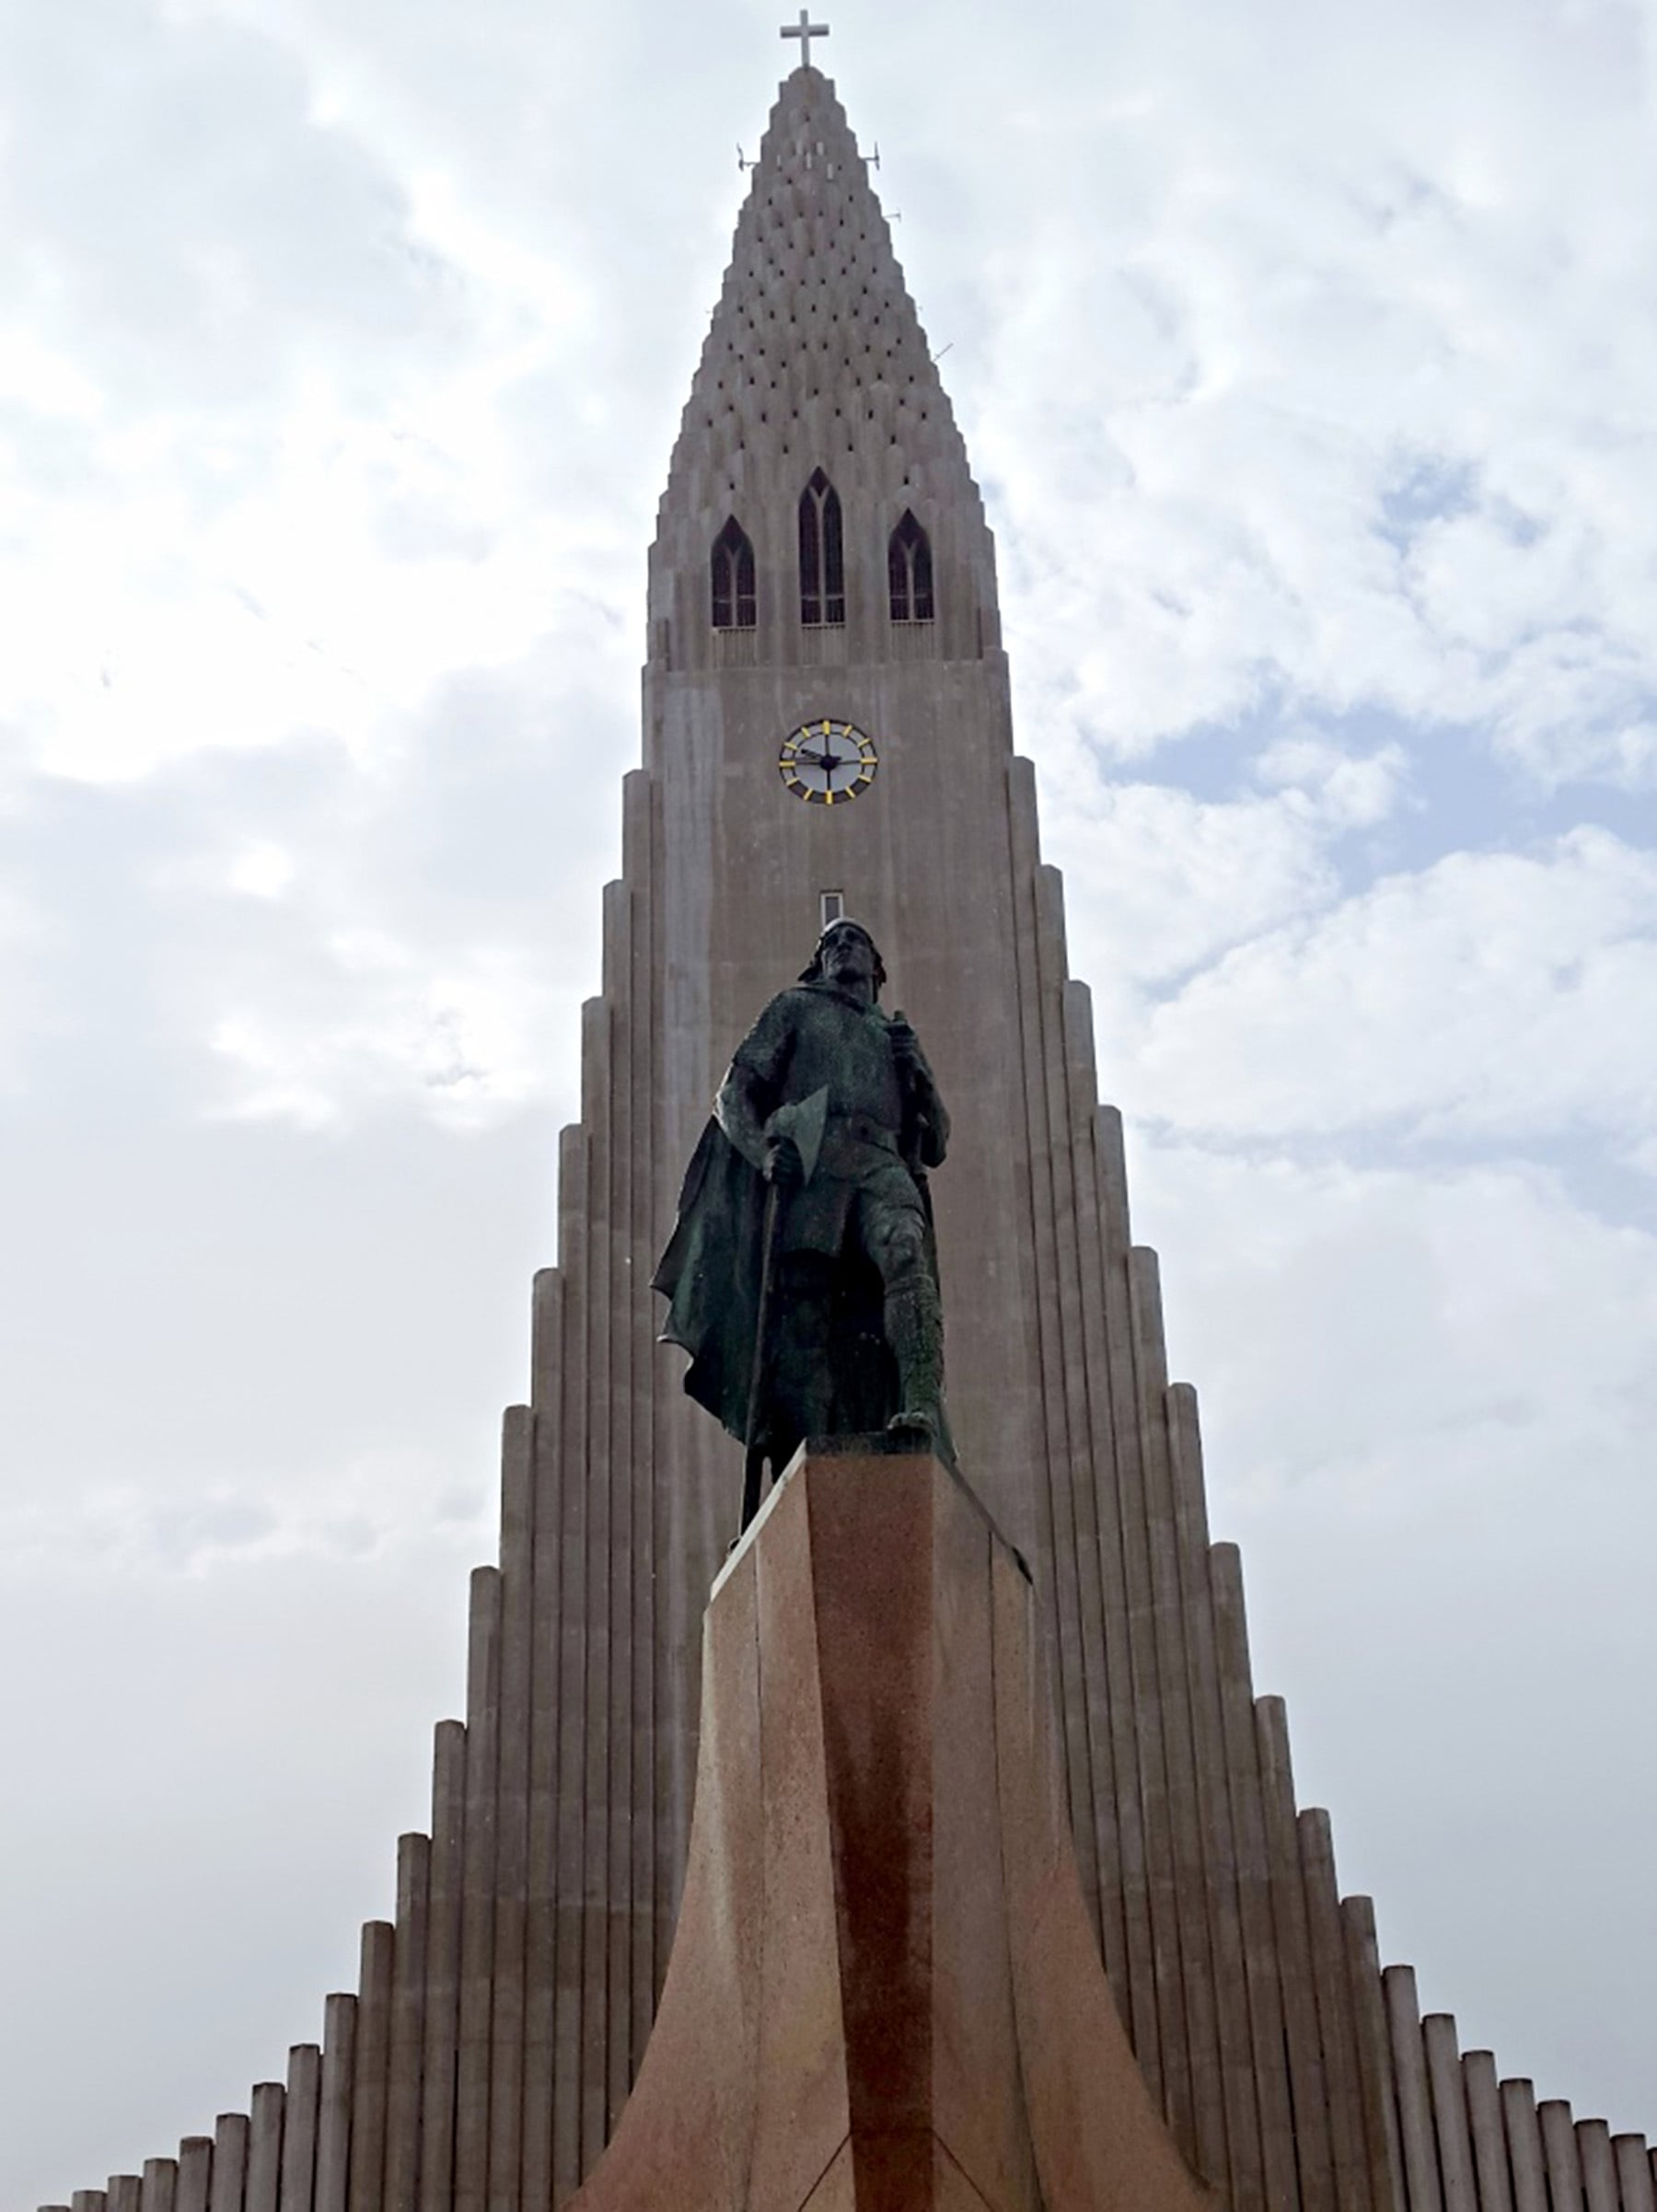 Hallgrimskirkja Cathedral is a landmark in Reykjavik and also one of the tallest buildings. Icelanders avoid building skyscrapers to preserve the scenic landscape that ribbons the city.